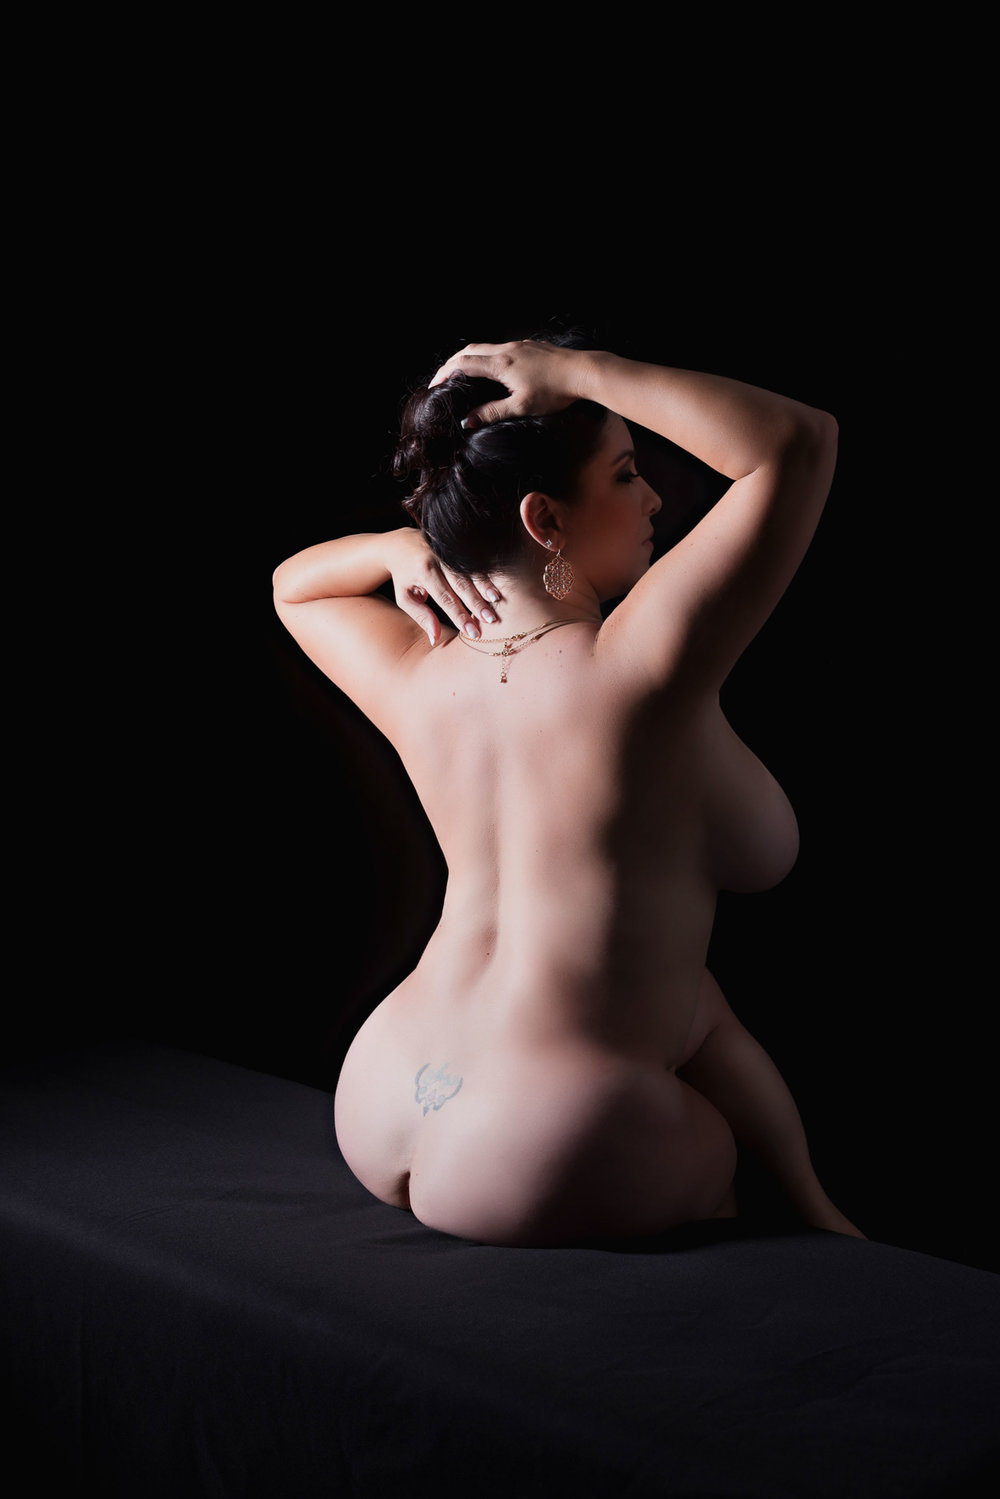 nude art photography of plus-size woman